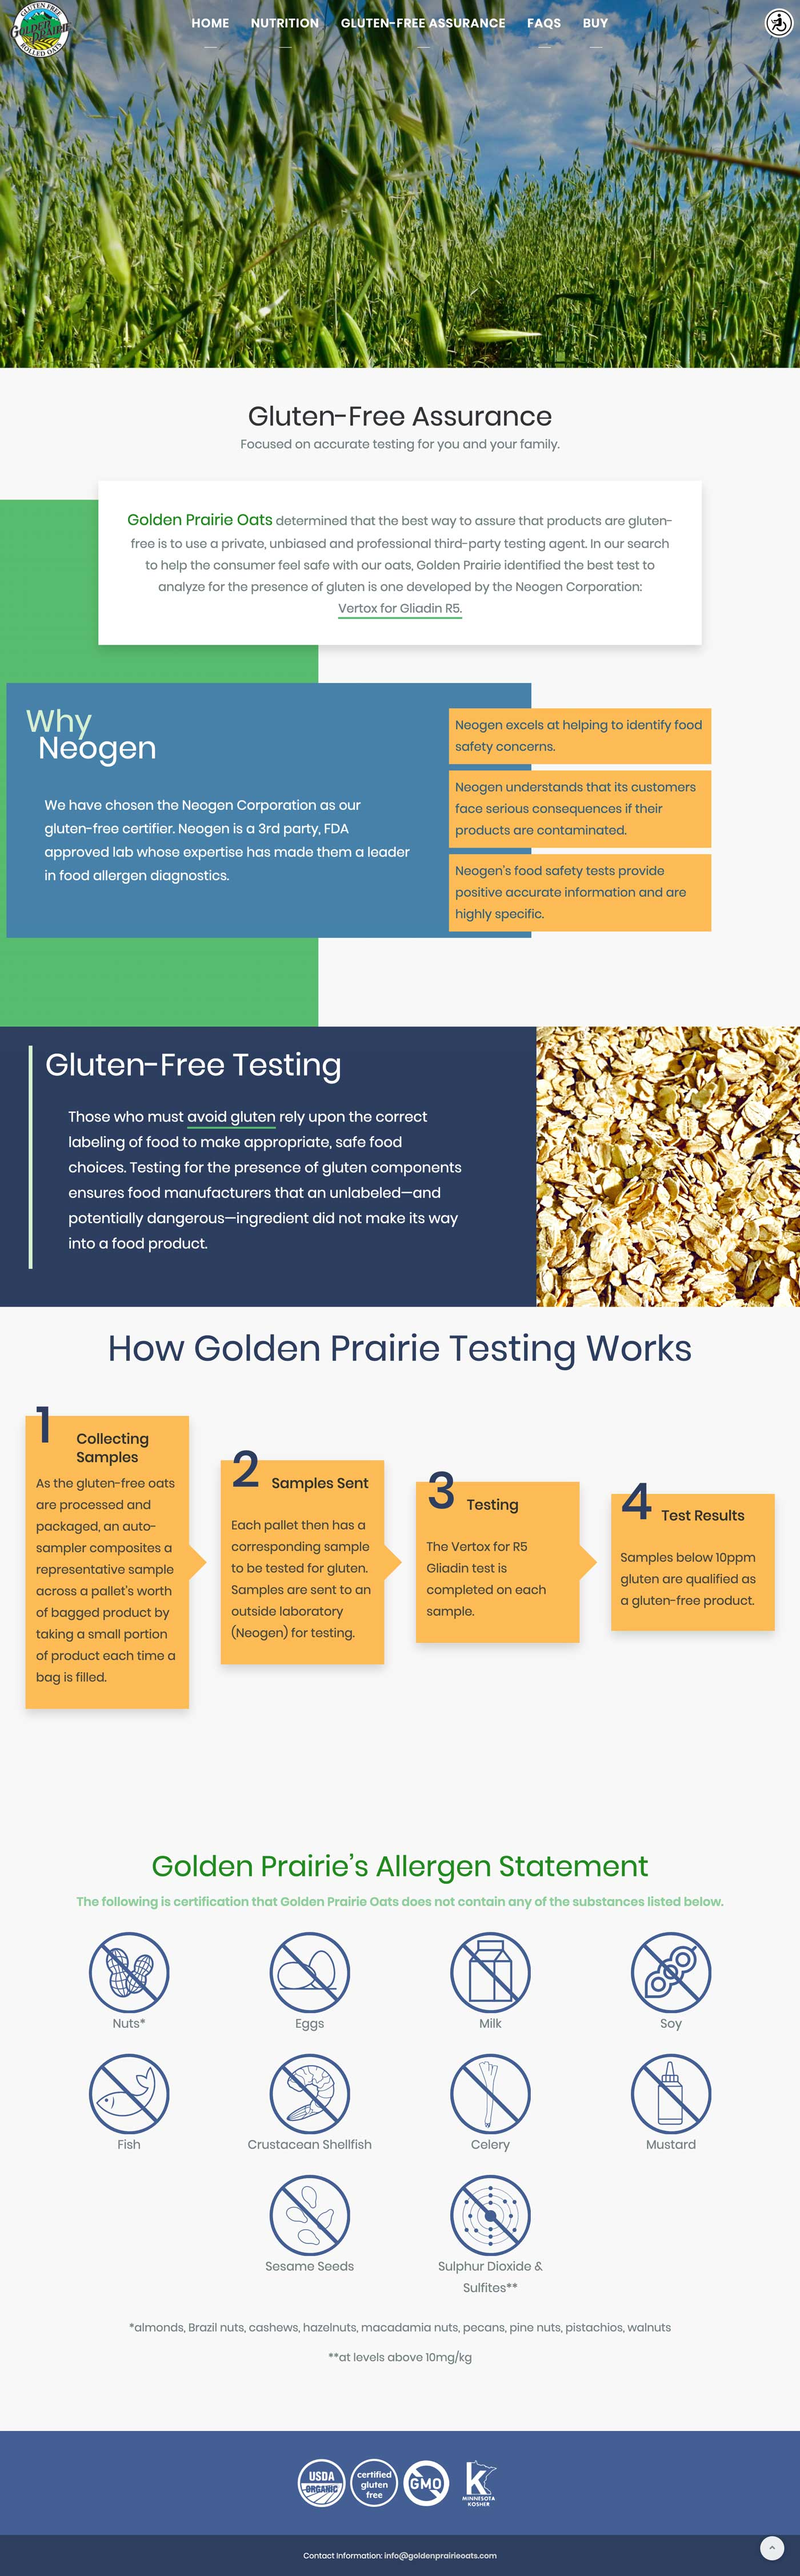 Golden Prairie Oats website page shot - gluten-free page